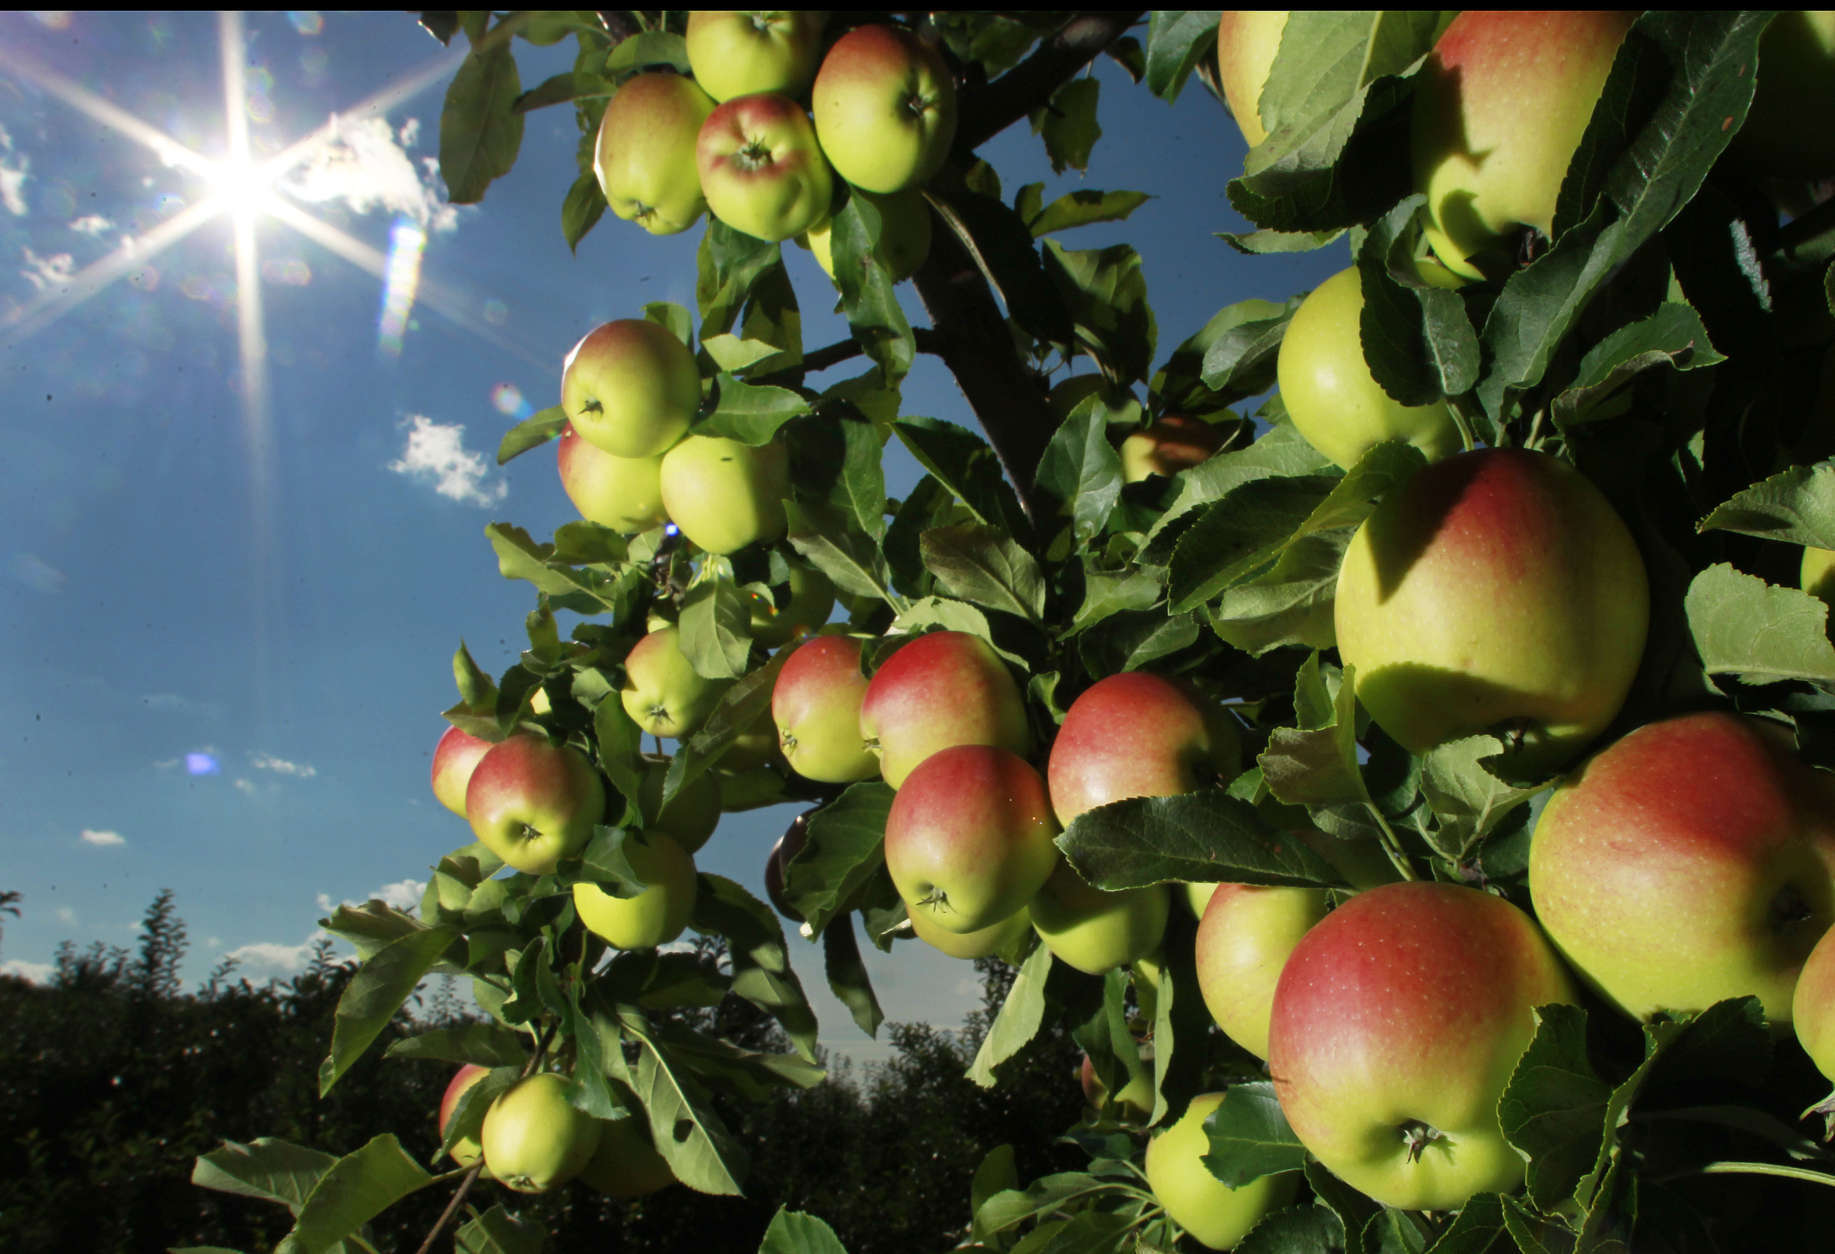 In this Tuesday, Aug. 26, 2014 photo, apples begin to ripen at Carter Hill Orchard in Concord, N.H. Northern New England apple growers are expecting a decent crop but not as good as last year's bumper yield. (AP Photo/Jim Cole)